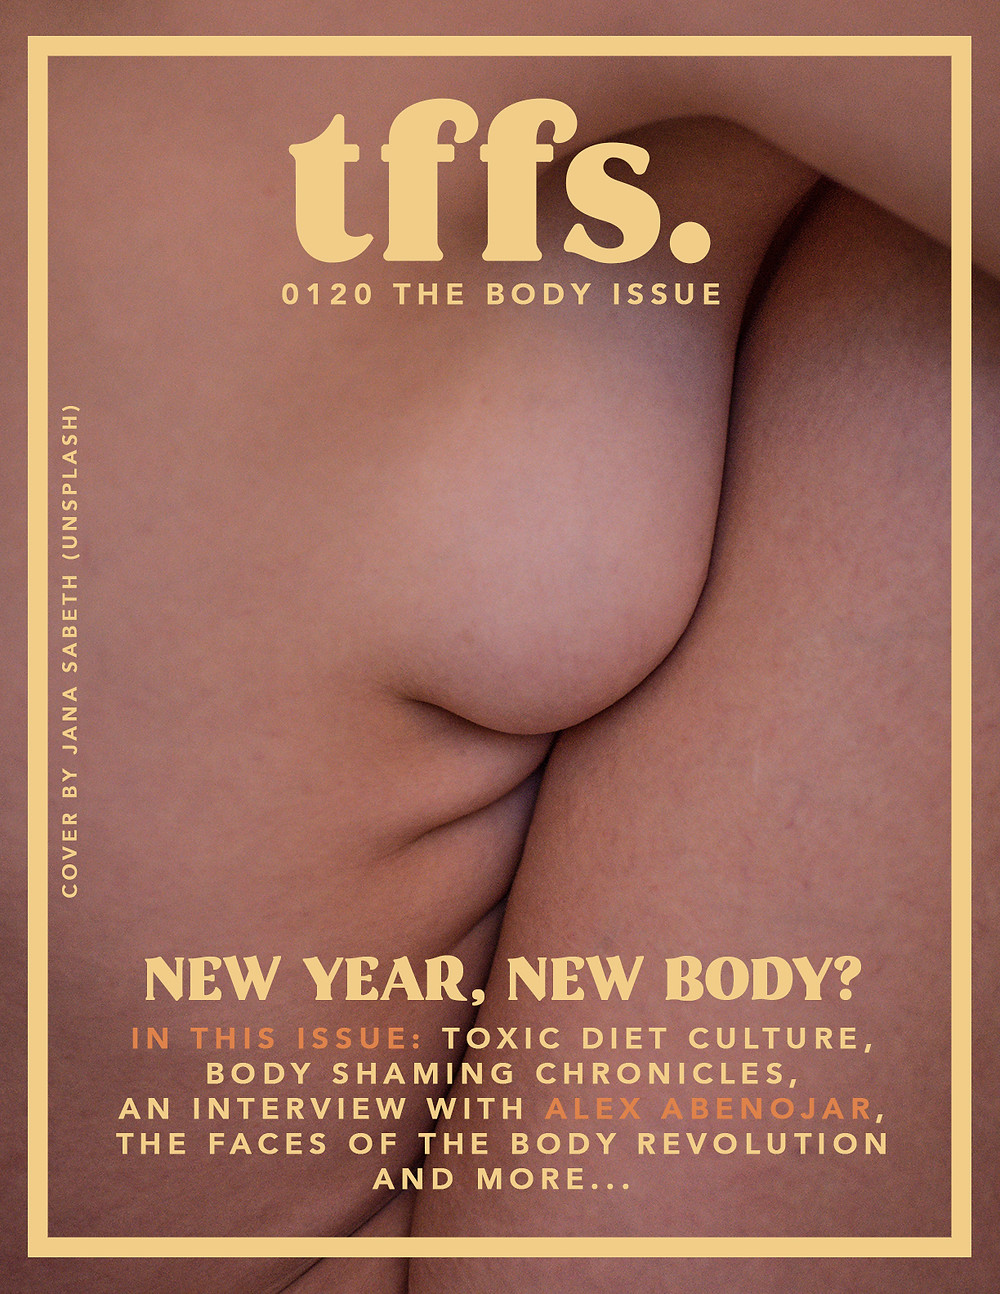 "This is the cover photo of The Body Issue. The same photo as above is used. There is text over the photo: ""tffs. 0120 The Body Issue. New Year, New Body? In this issue: Toxic diet culture, body shaming chronicles, an interview with alex abenojar, the faces of the body revolution and more..."""